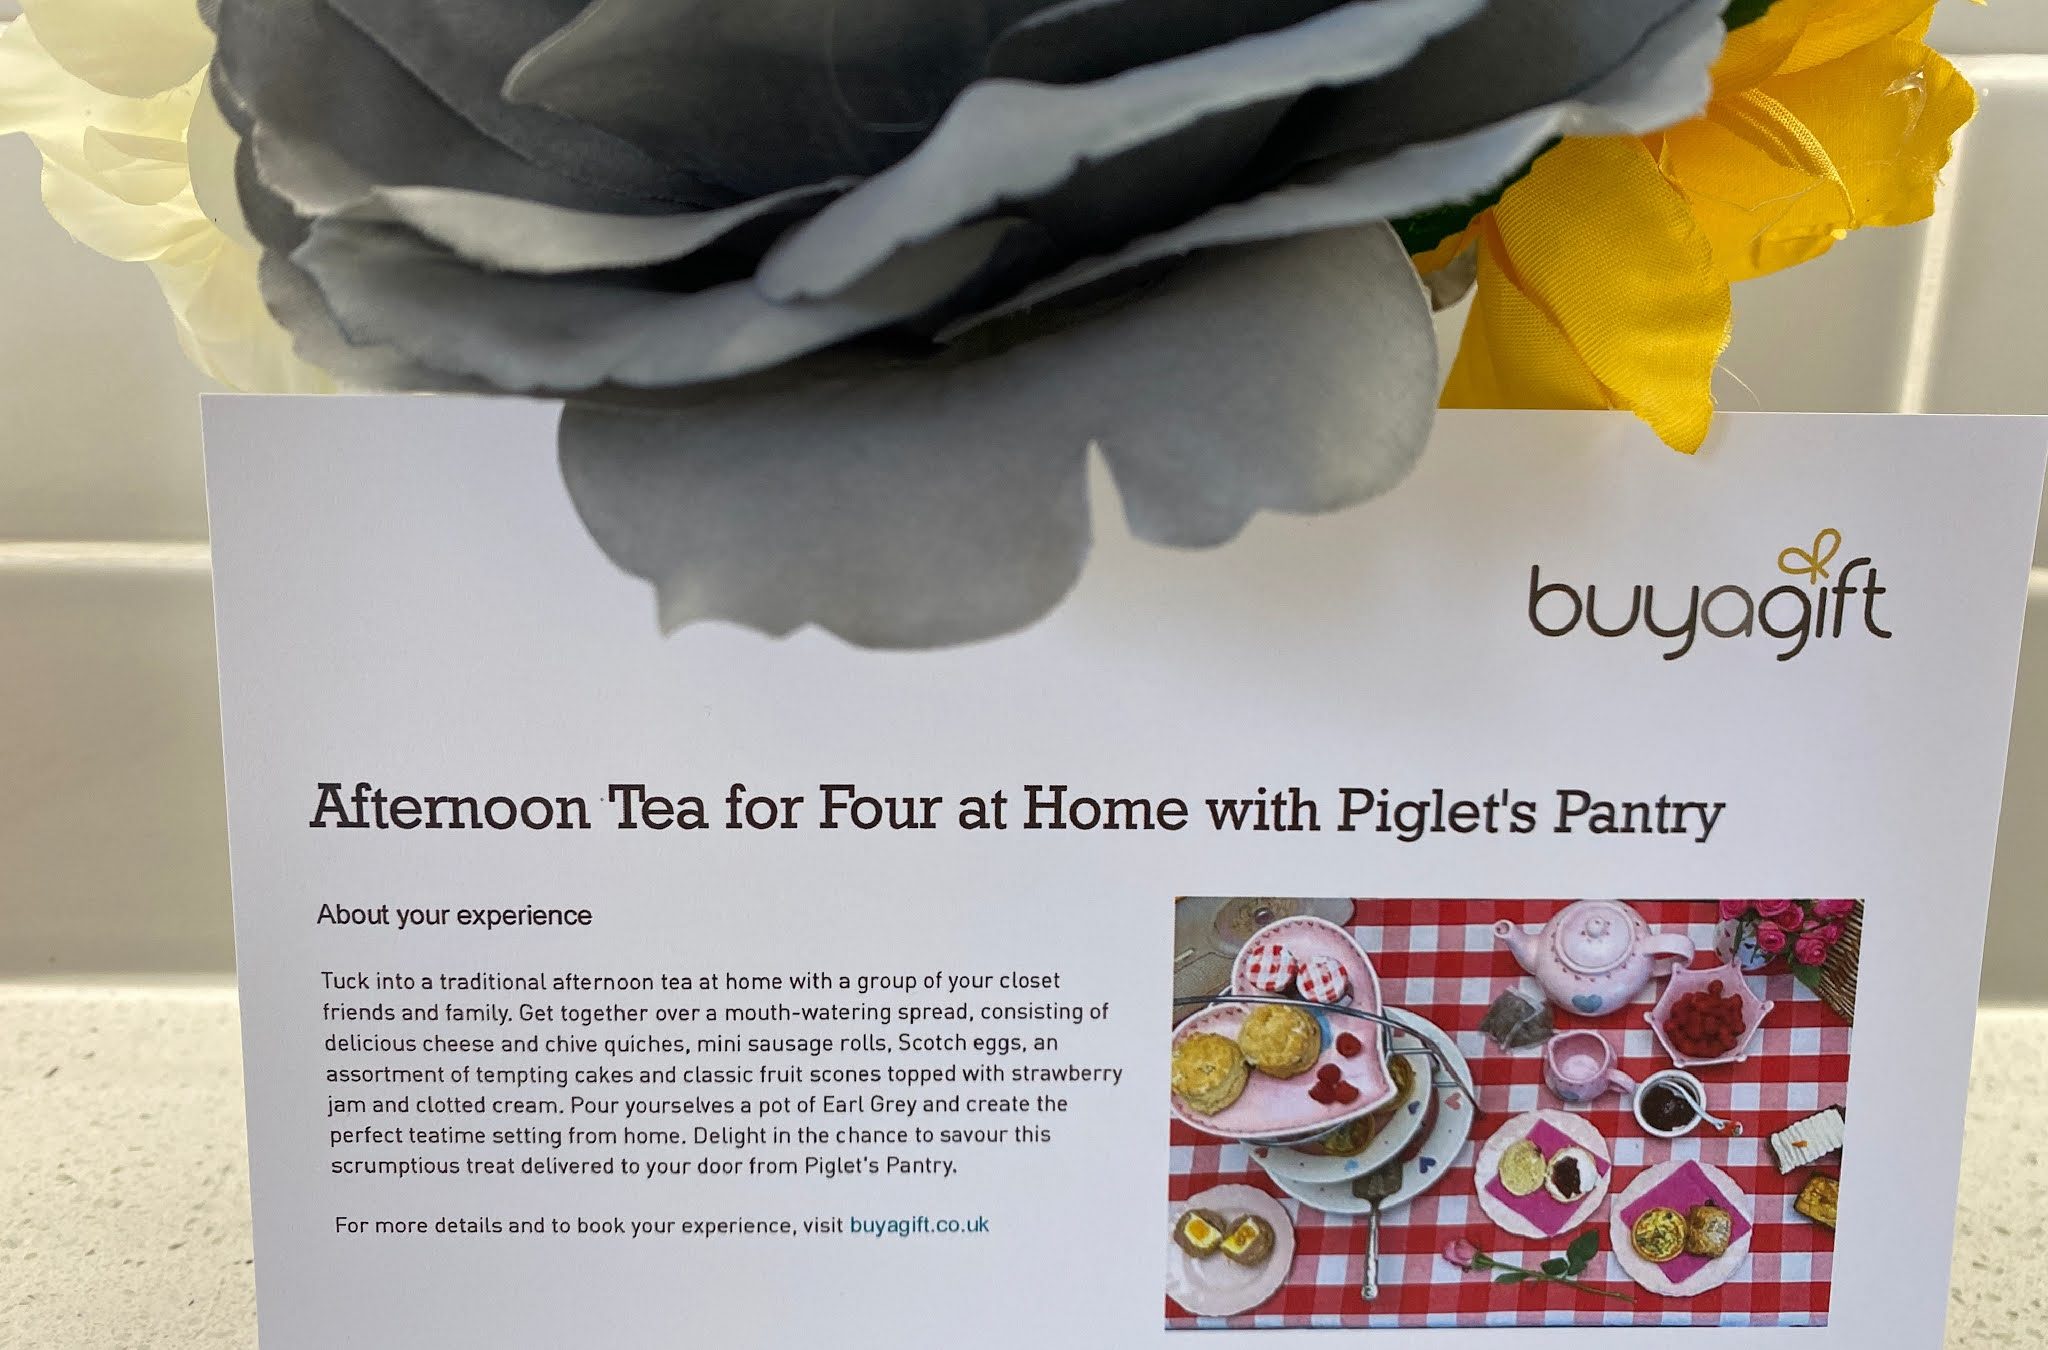 buyagift voucher for afternoon tea